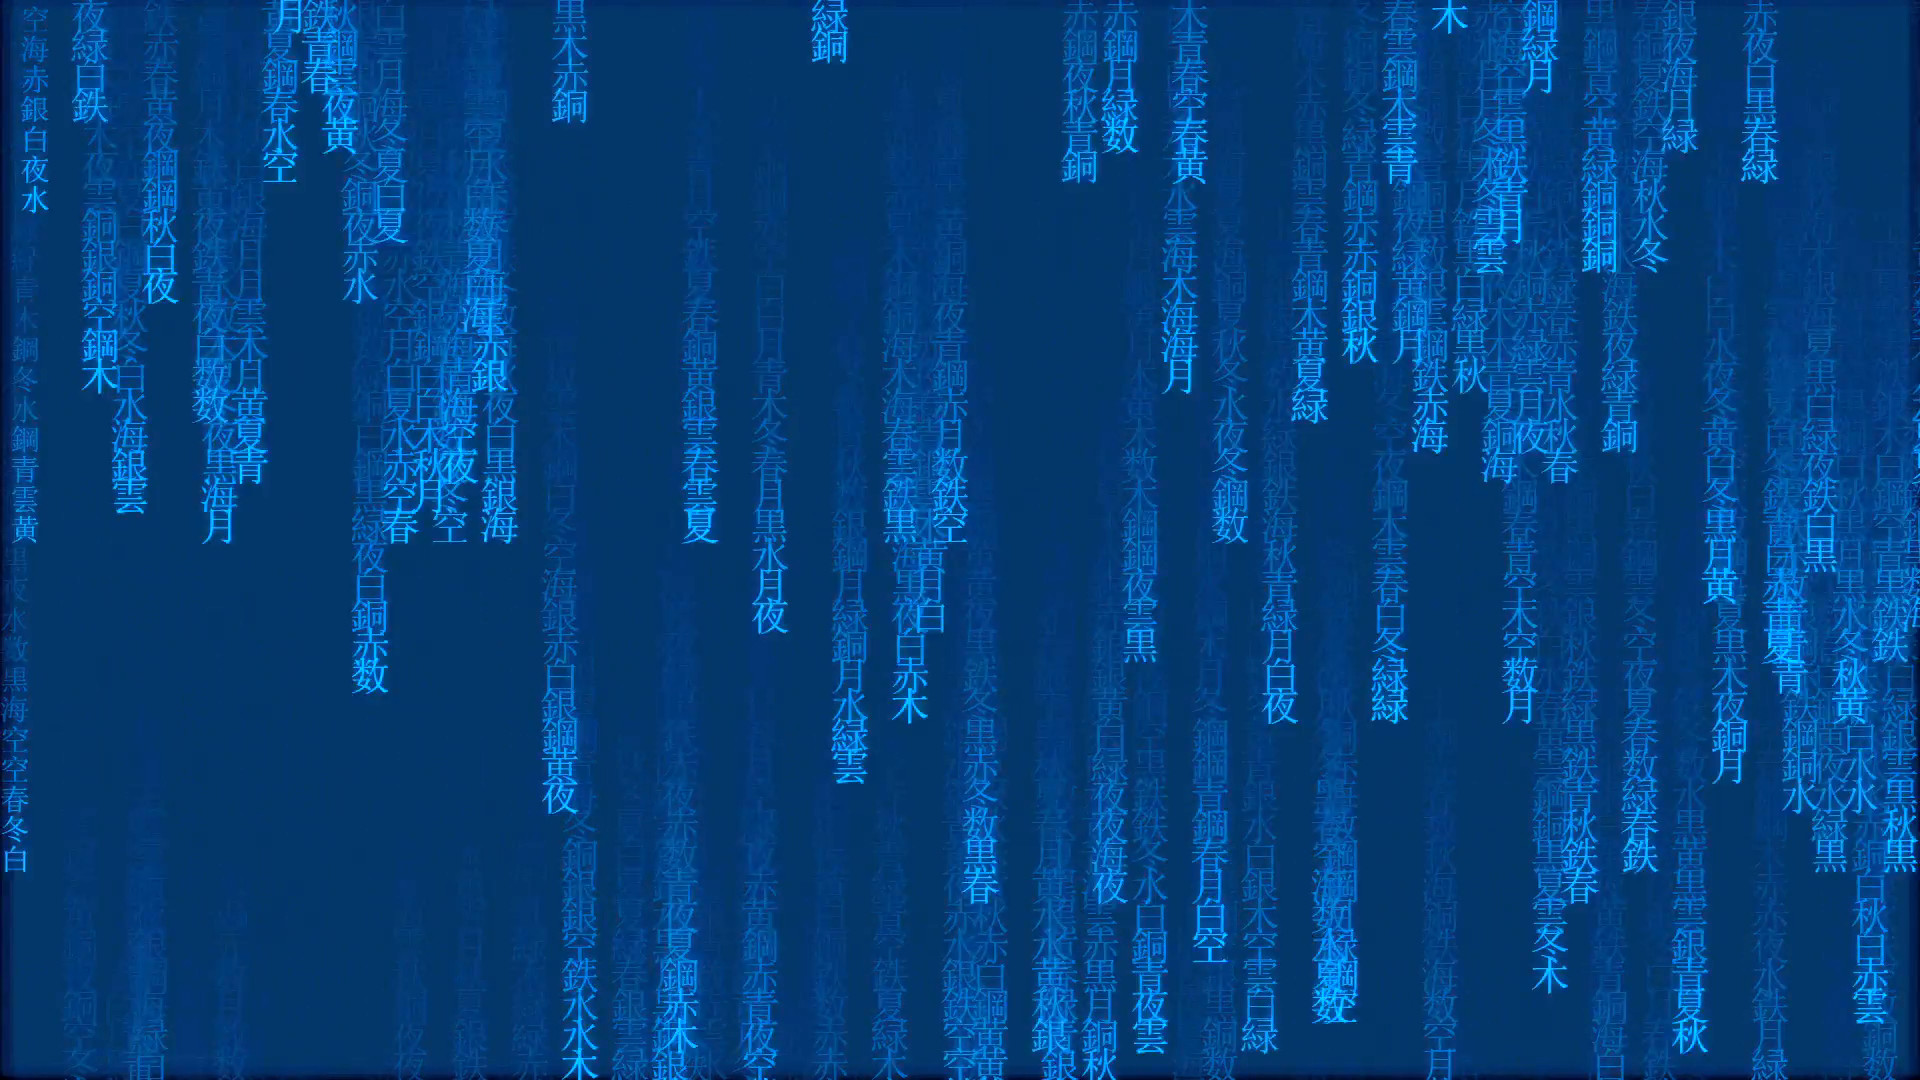 Subscription Library blue Japan matrix background, computer generated code  with Japanese and Chinese characters.